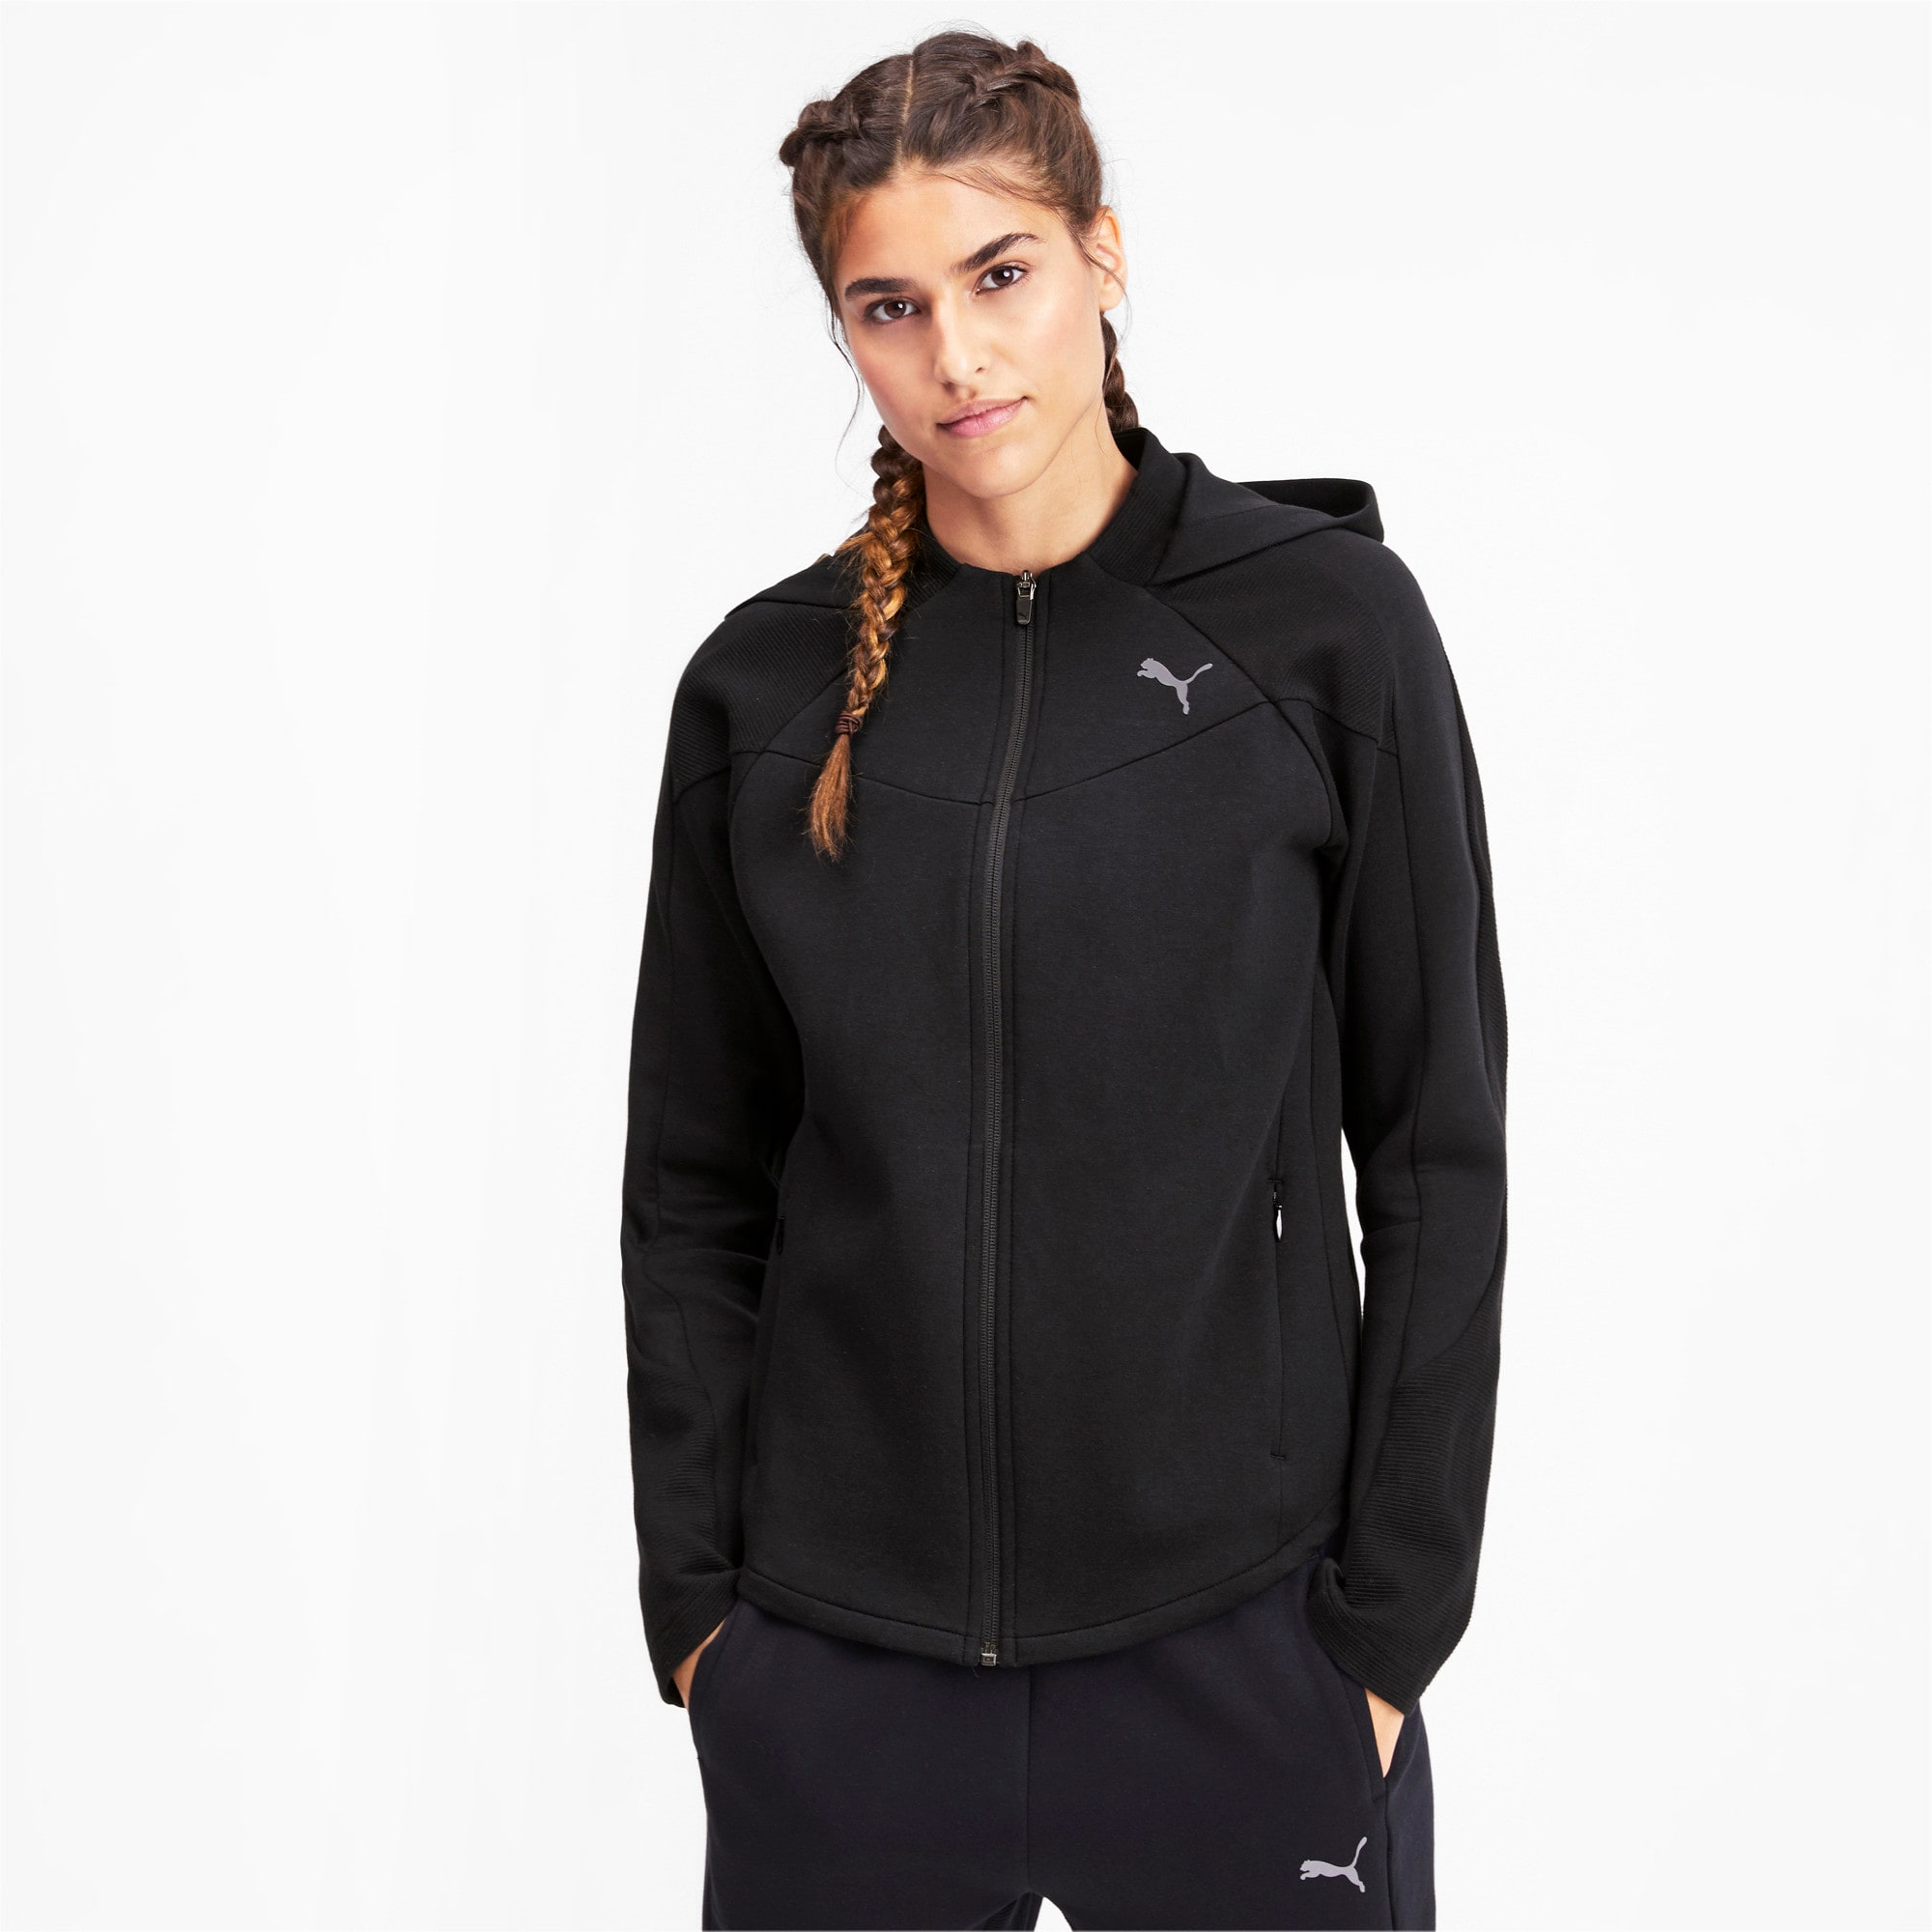 Thumbnail 1 of Evostripe Damen Sweatjacke mit Kapuze, Puma Black, medium